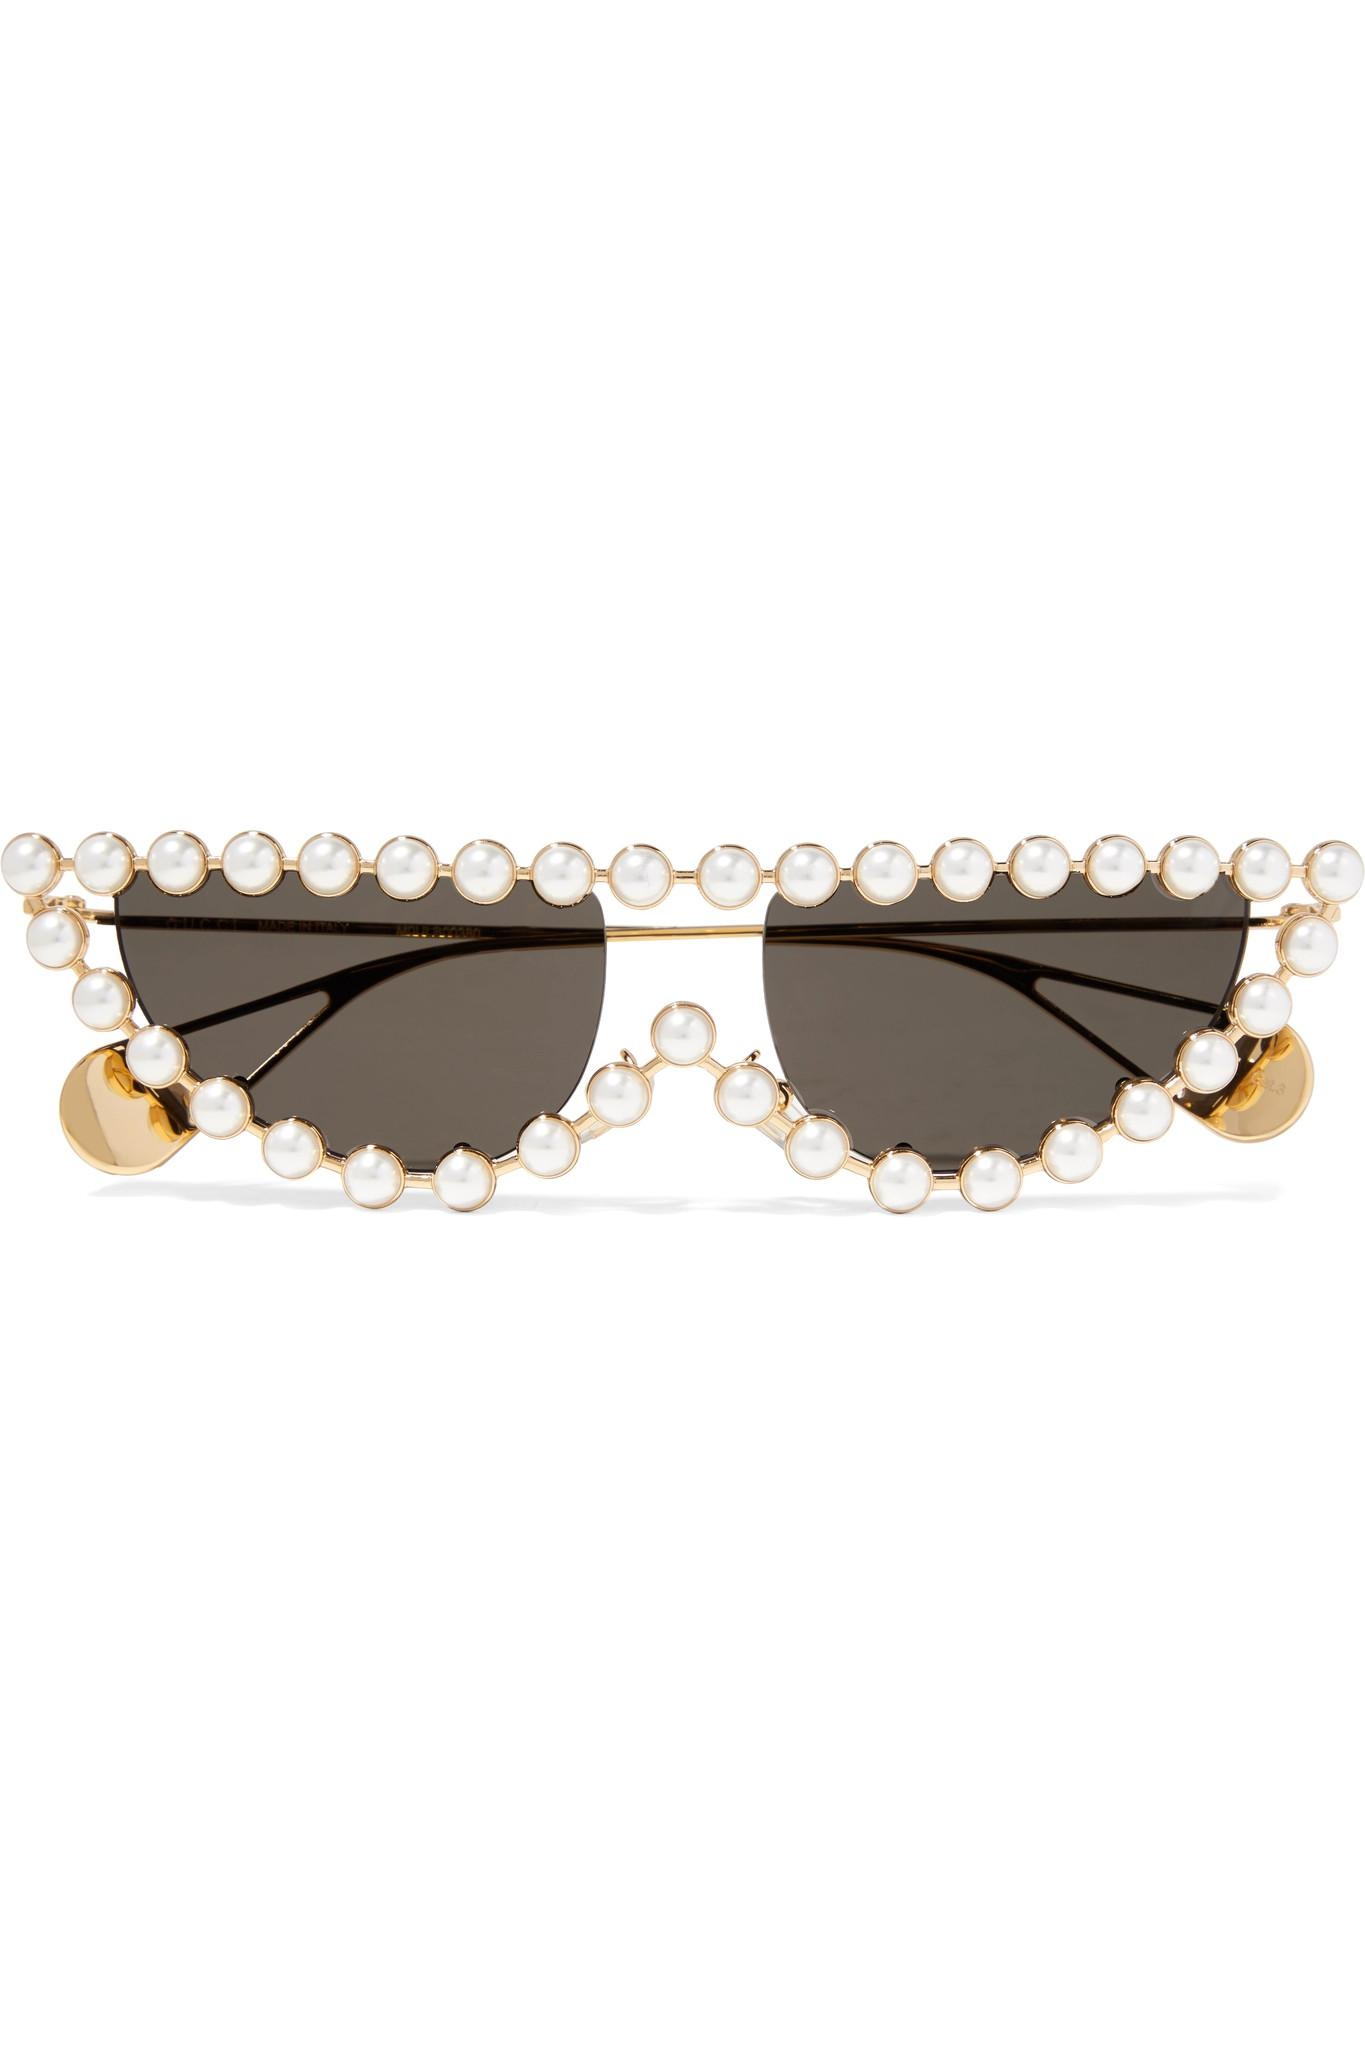 6e46cedd4d Lyst - Gucci Cat-eye Faux Pearl-embellished Gold-tone Sunglasses in ...